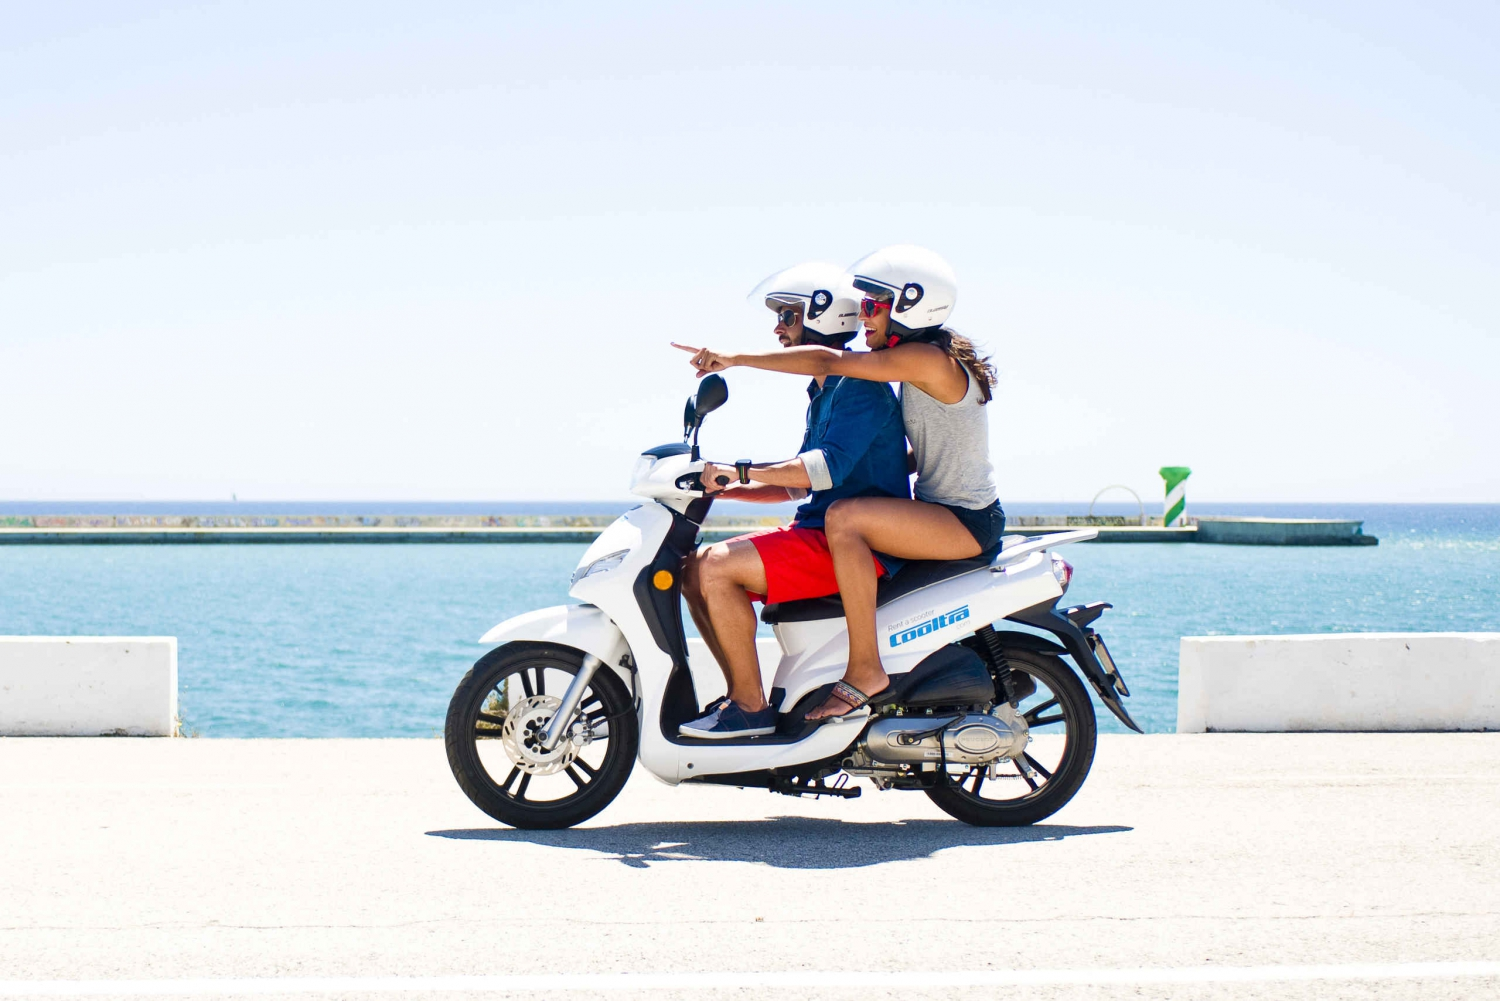 Scooter Rental in Mallorca